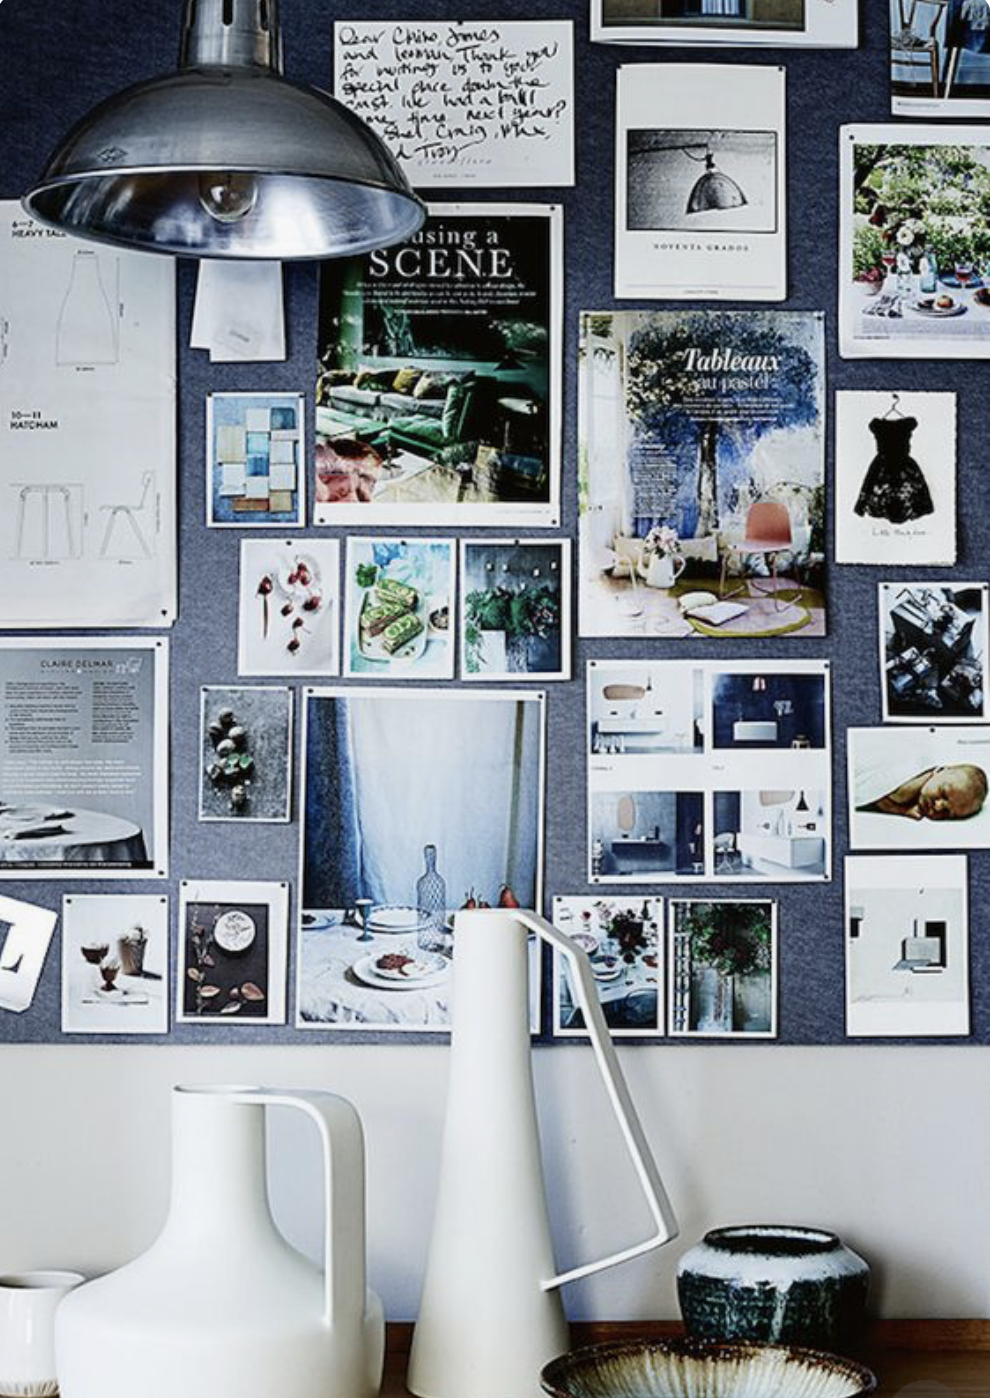 CREATE A MOOD BOARD   photo cred design4space.com via pinterest  Now that your space is all organized and uncluttered. You can start to look around and see where you want to make changes. Start with a mood board. Either on Pinterest or using magazine cutouts tacked on to a cork board. I actually have both. I get inspired by seeing my home decor goals daily. It reminds me of projects I want to do and helps me visualize them.